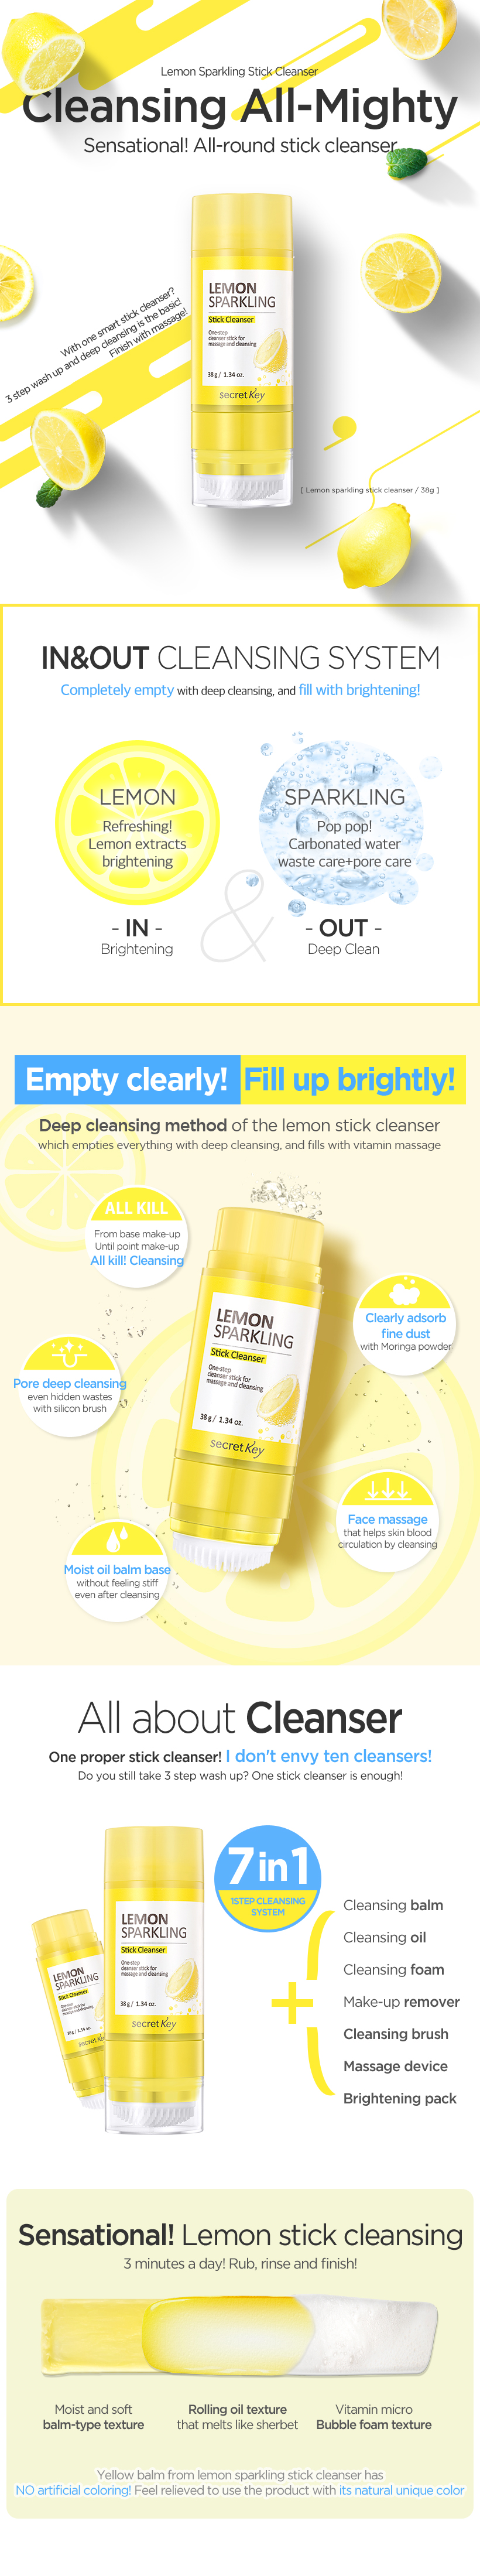 820_lemon_stick_cleanser_en_01.jpg